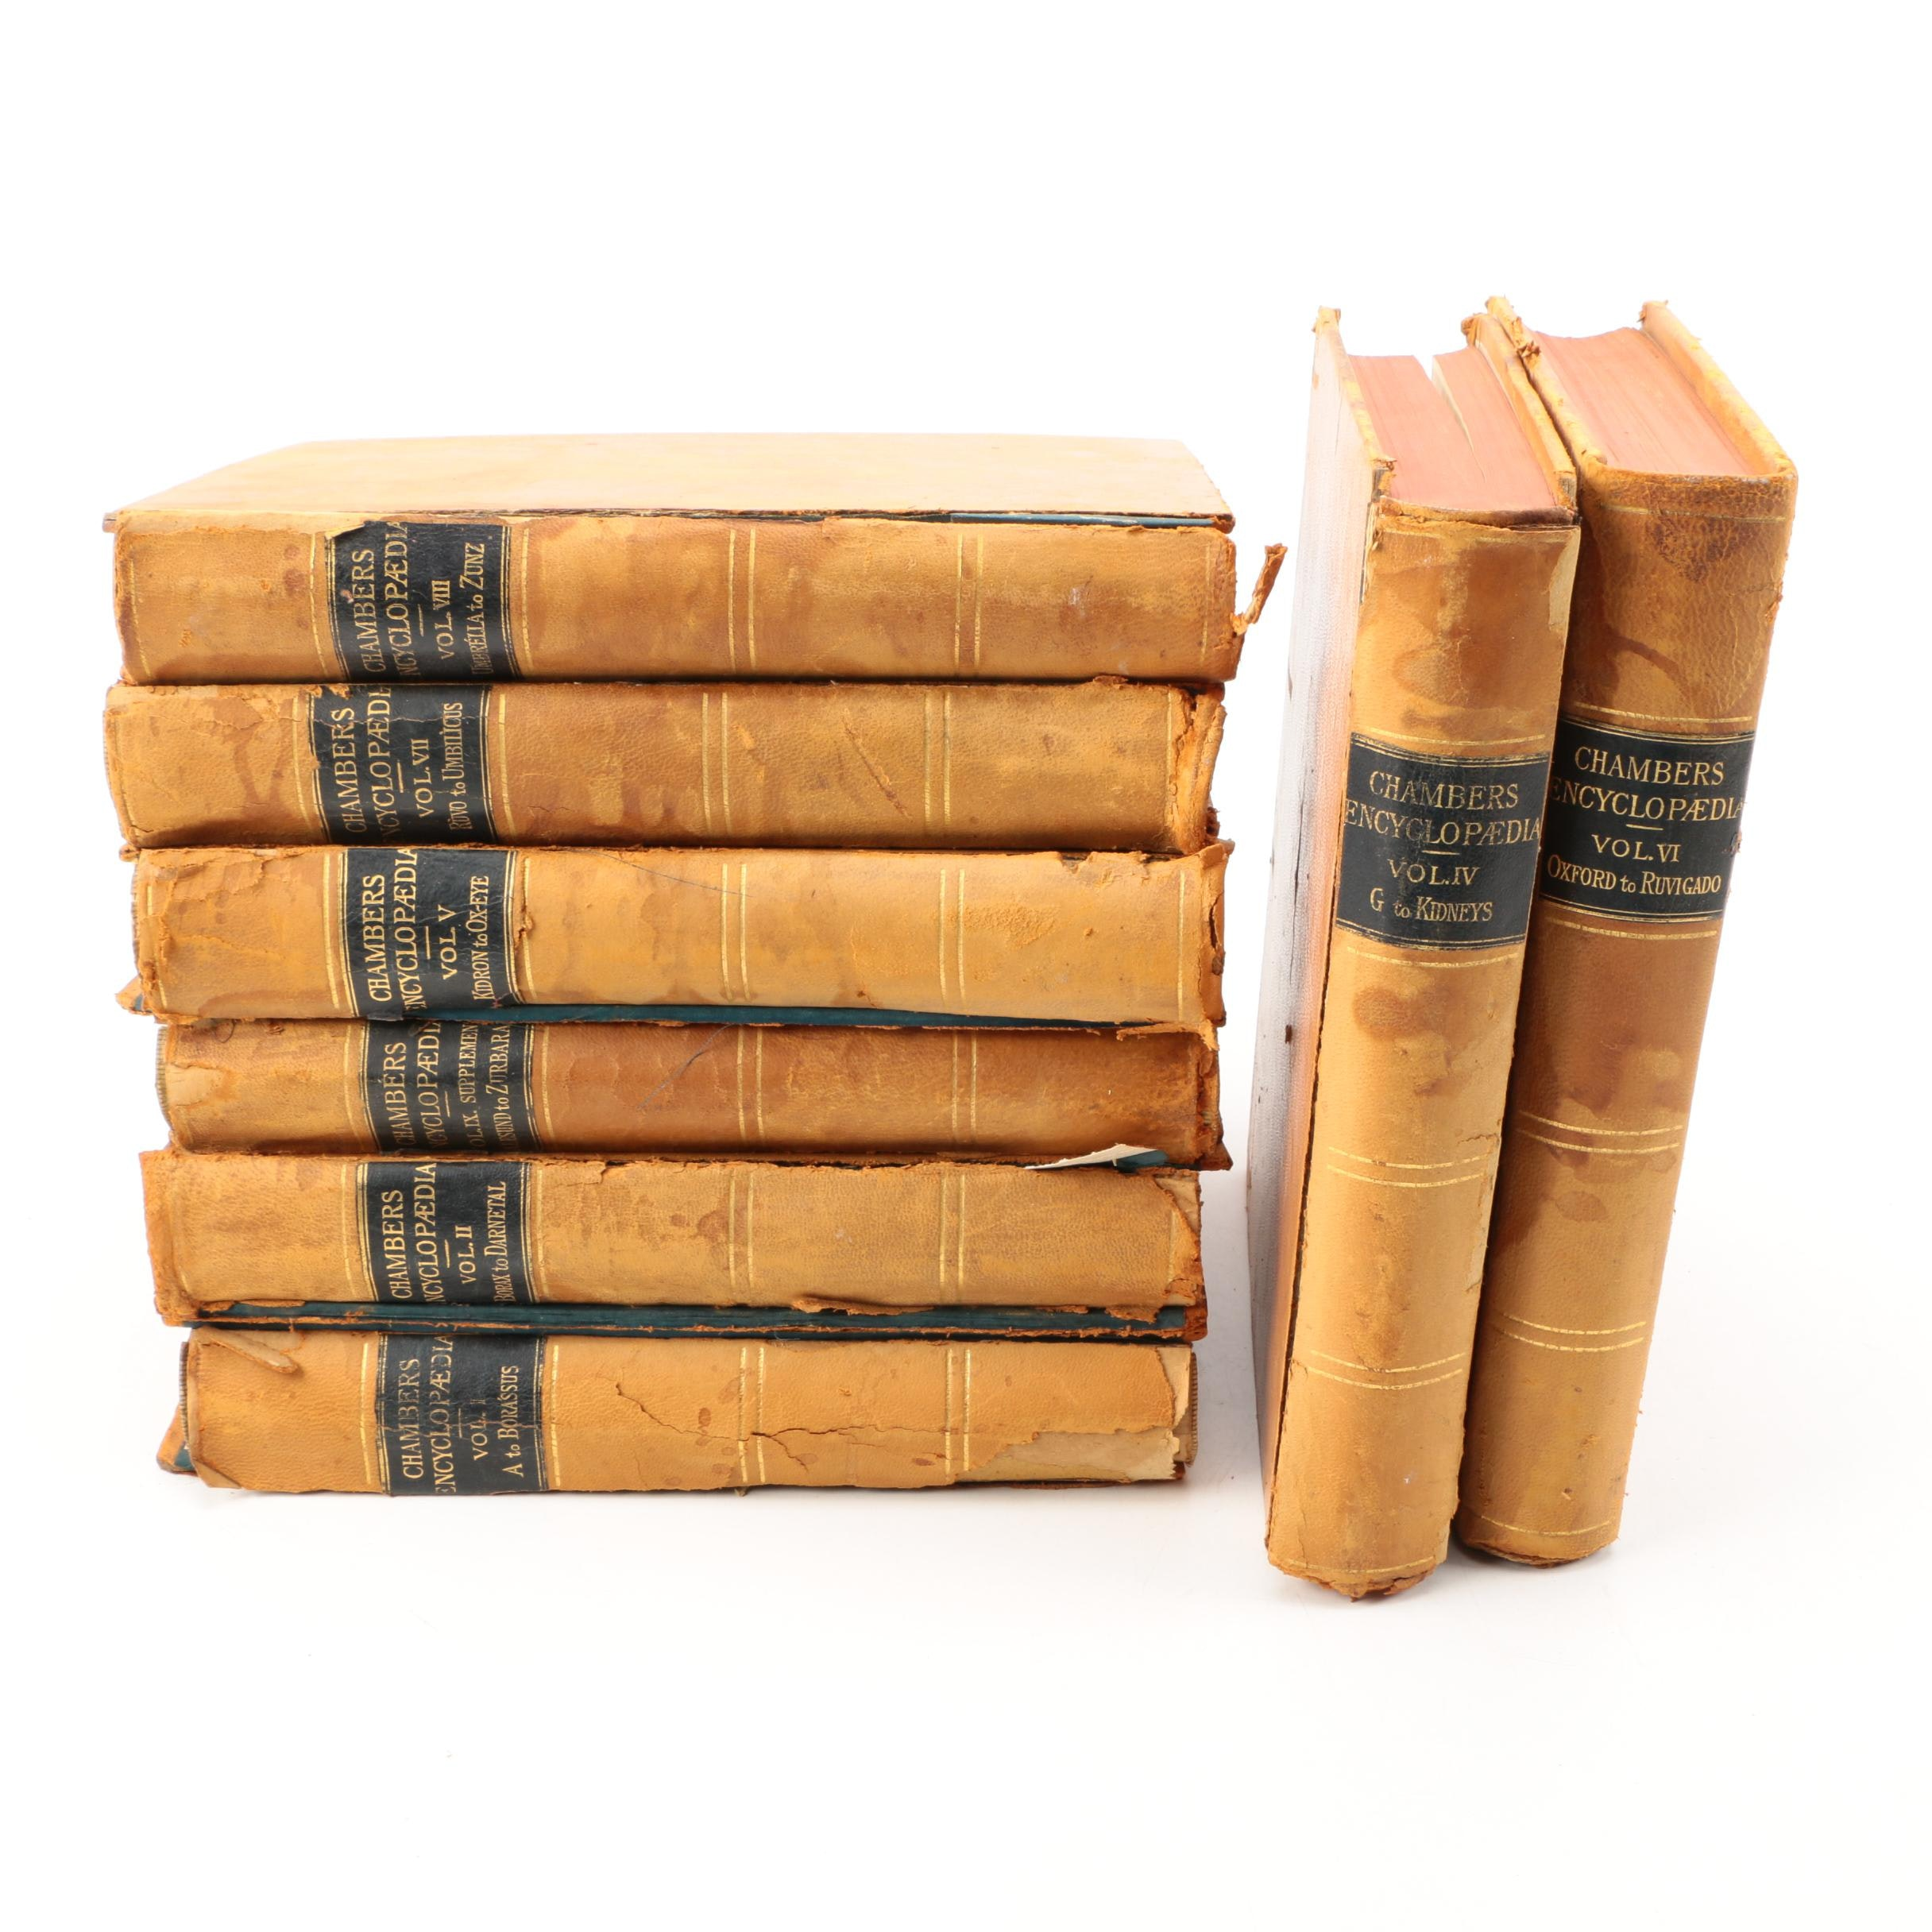 """1894 """"Chambers's Encyclopædia"""" in Eight Volumes"""